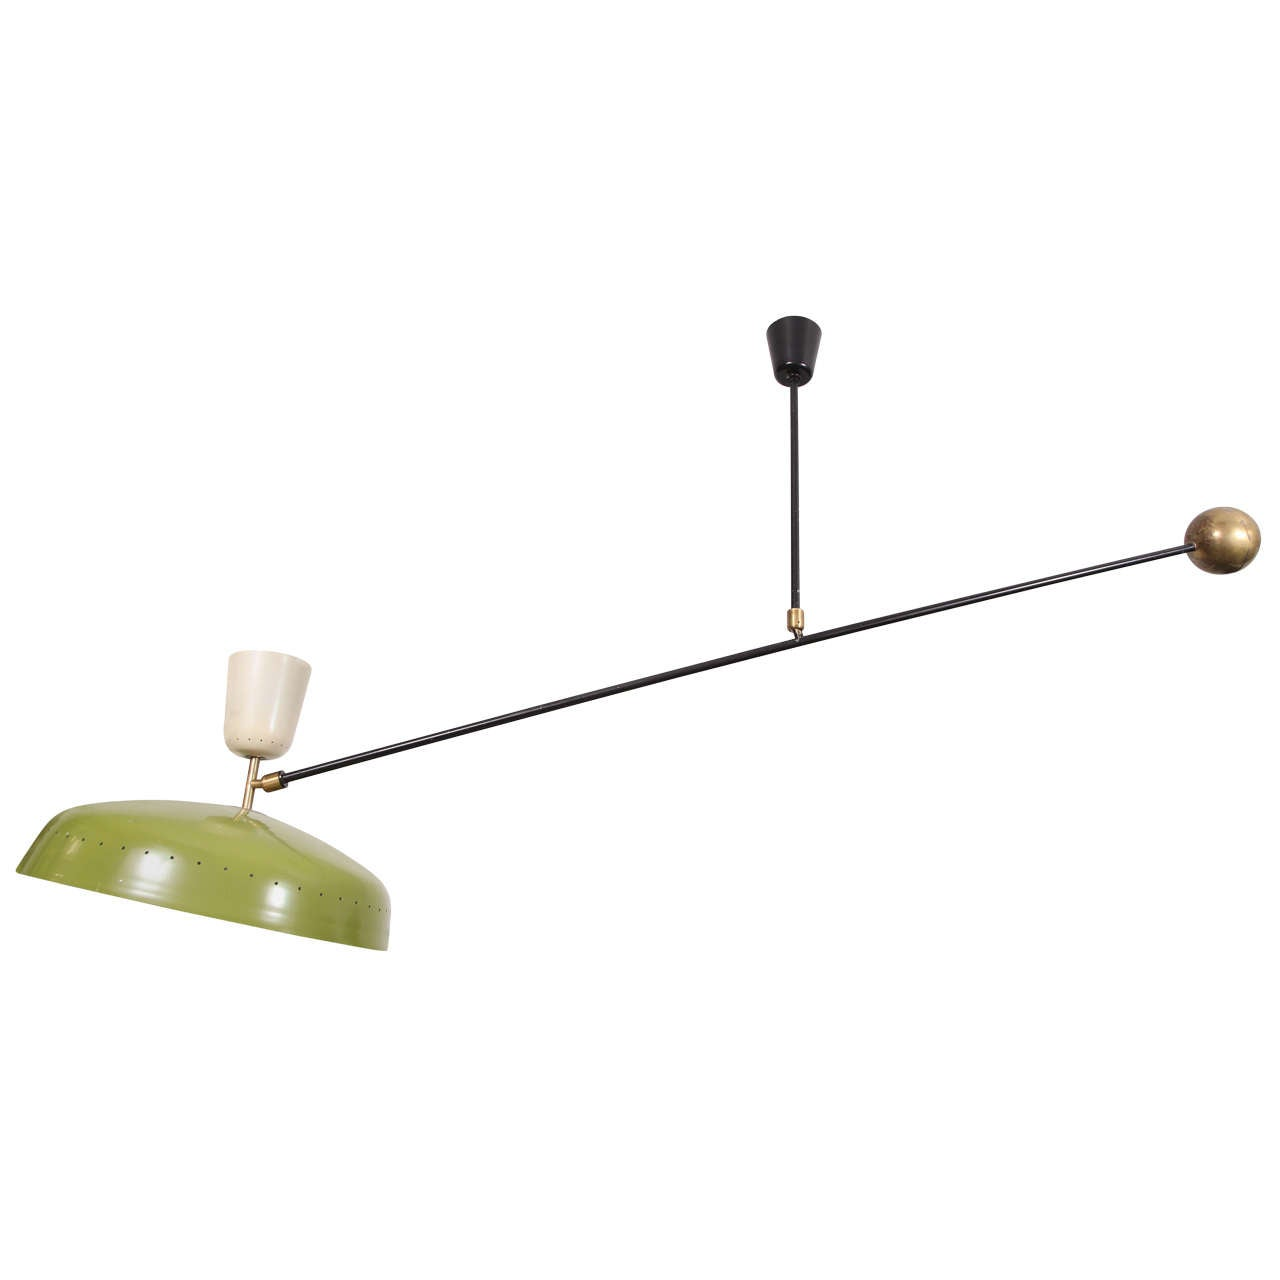 Pierre Guariche Swing Arm Ceiling Fixture For